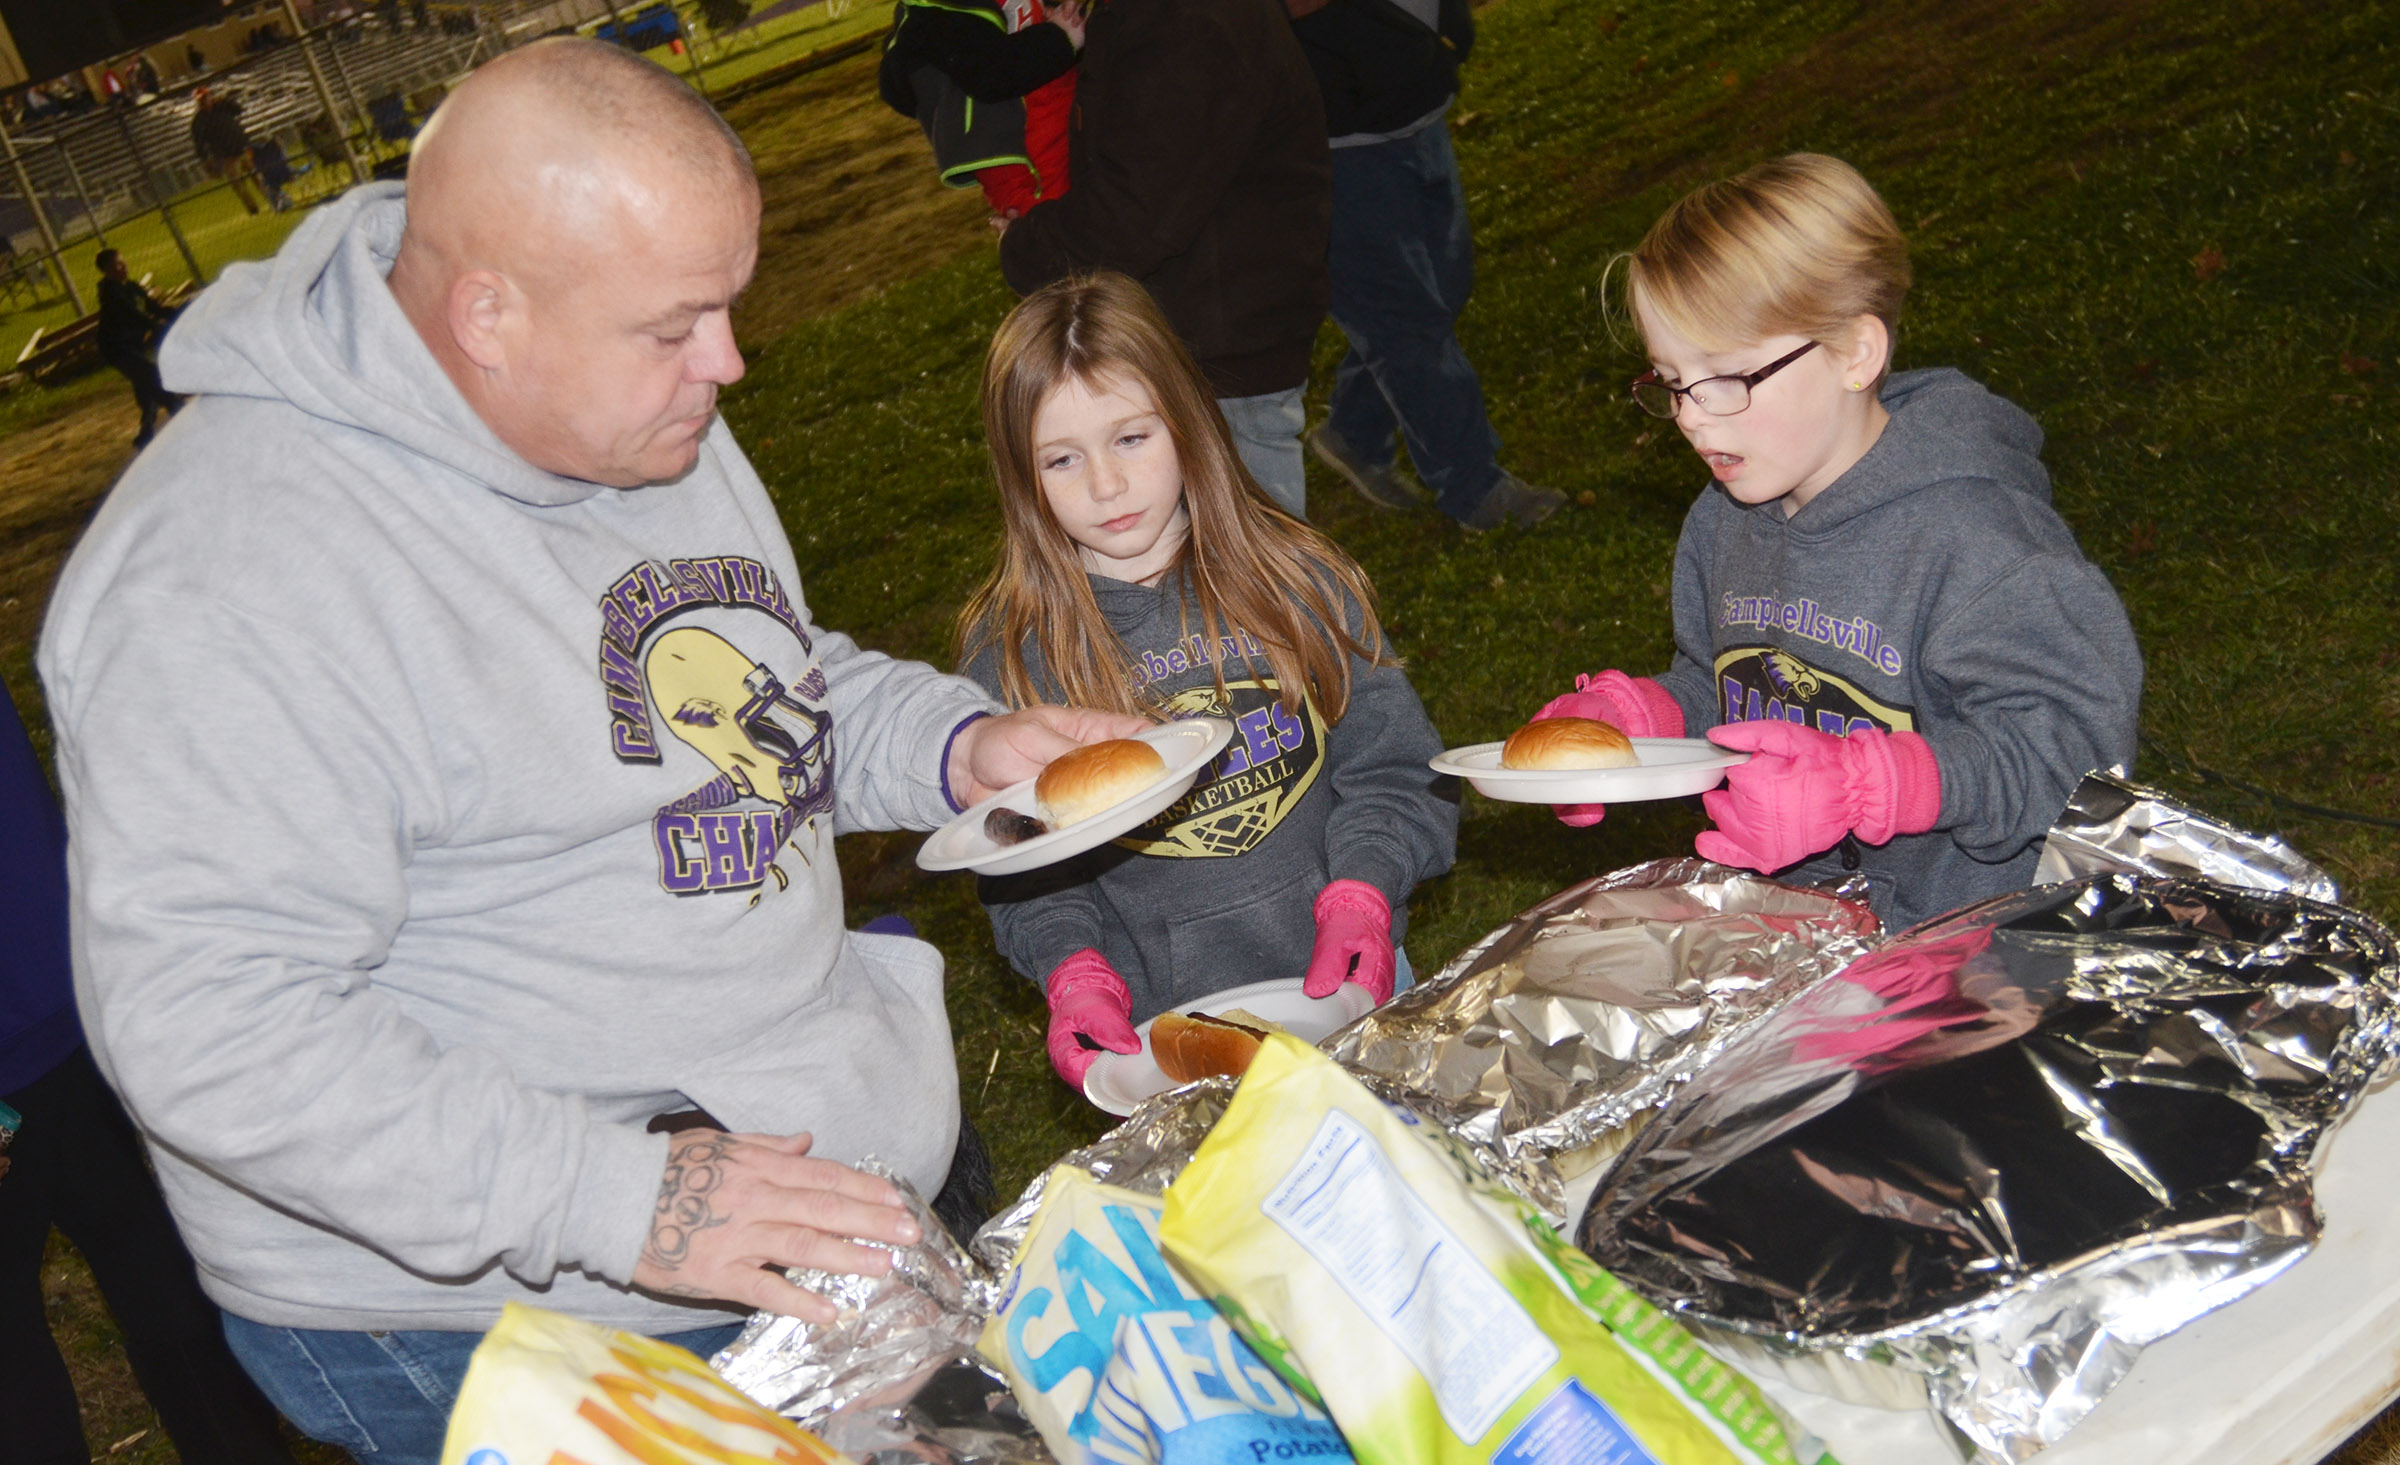 Chris Brunelle helps his daughters, CES second-graders Izzy, at left, and Maddie get their food at the tailgate.